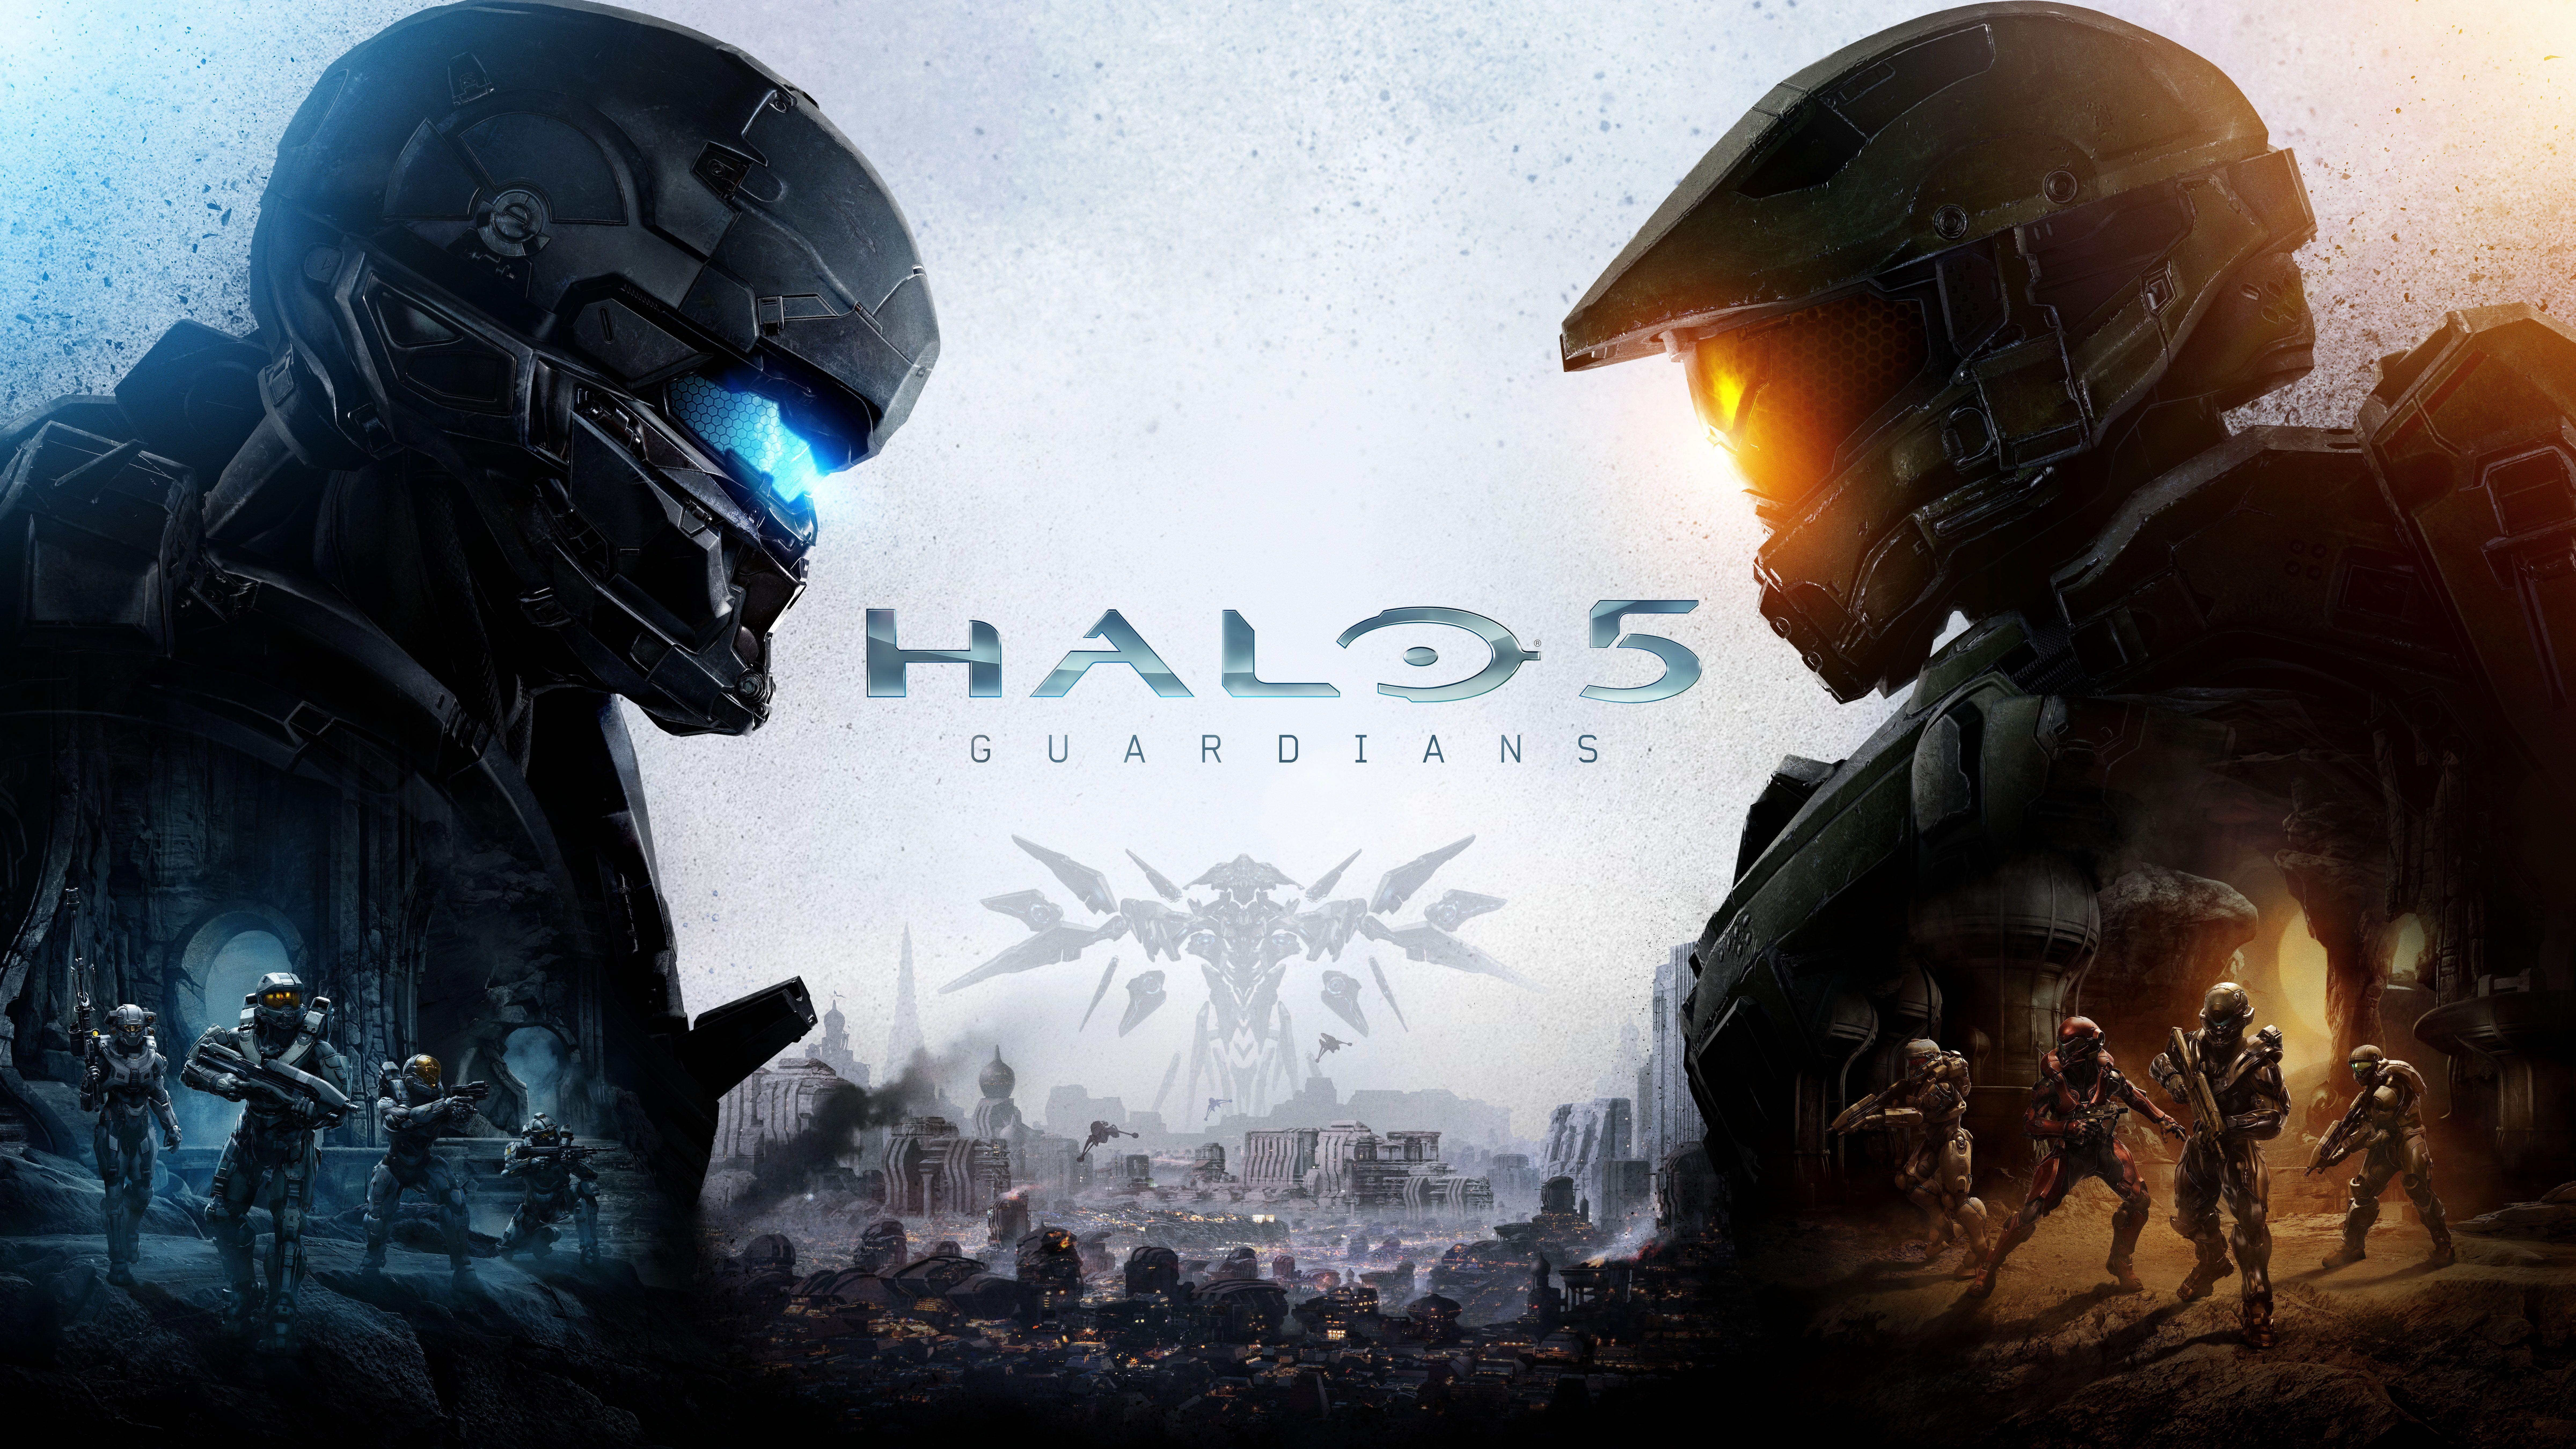 Halo 5 Guardians Wallpapers Wallpaper Cave